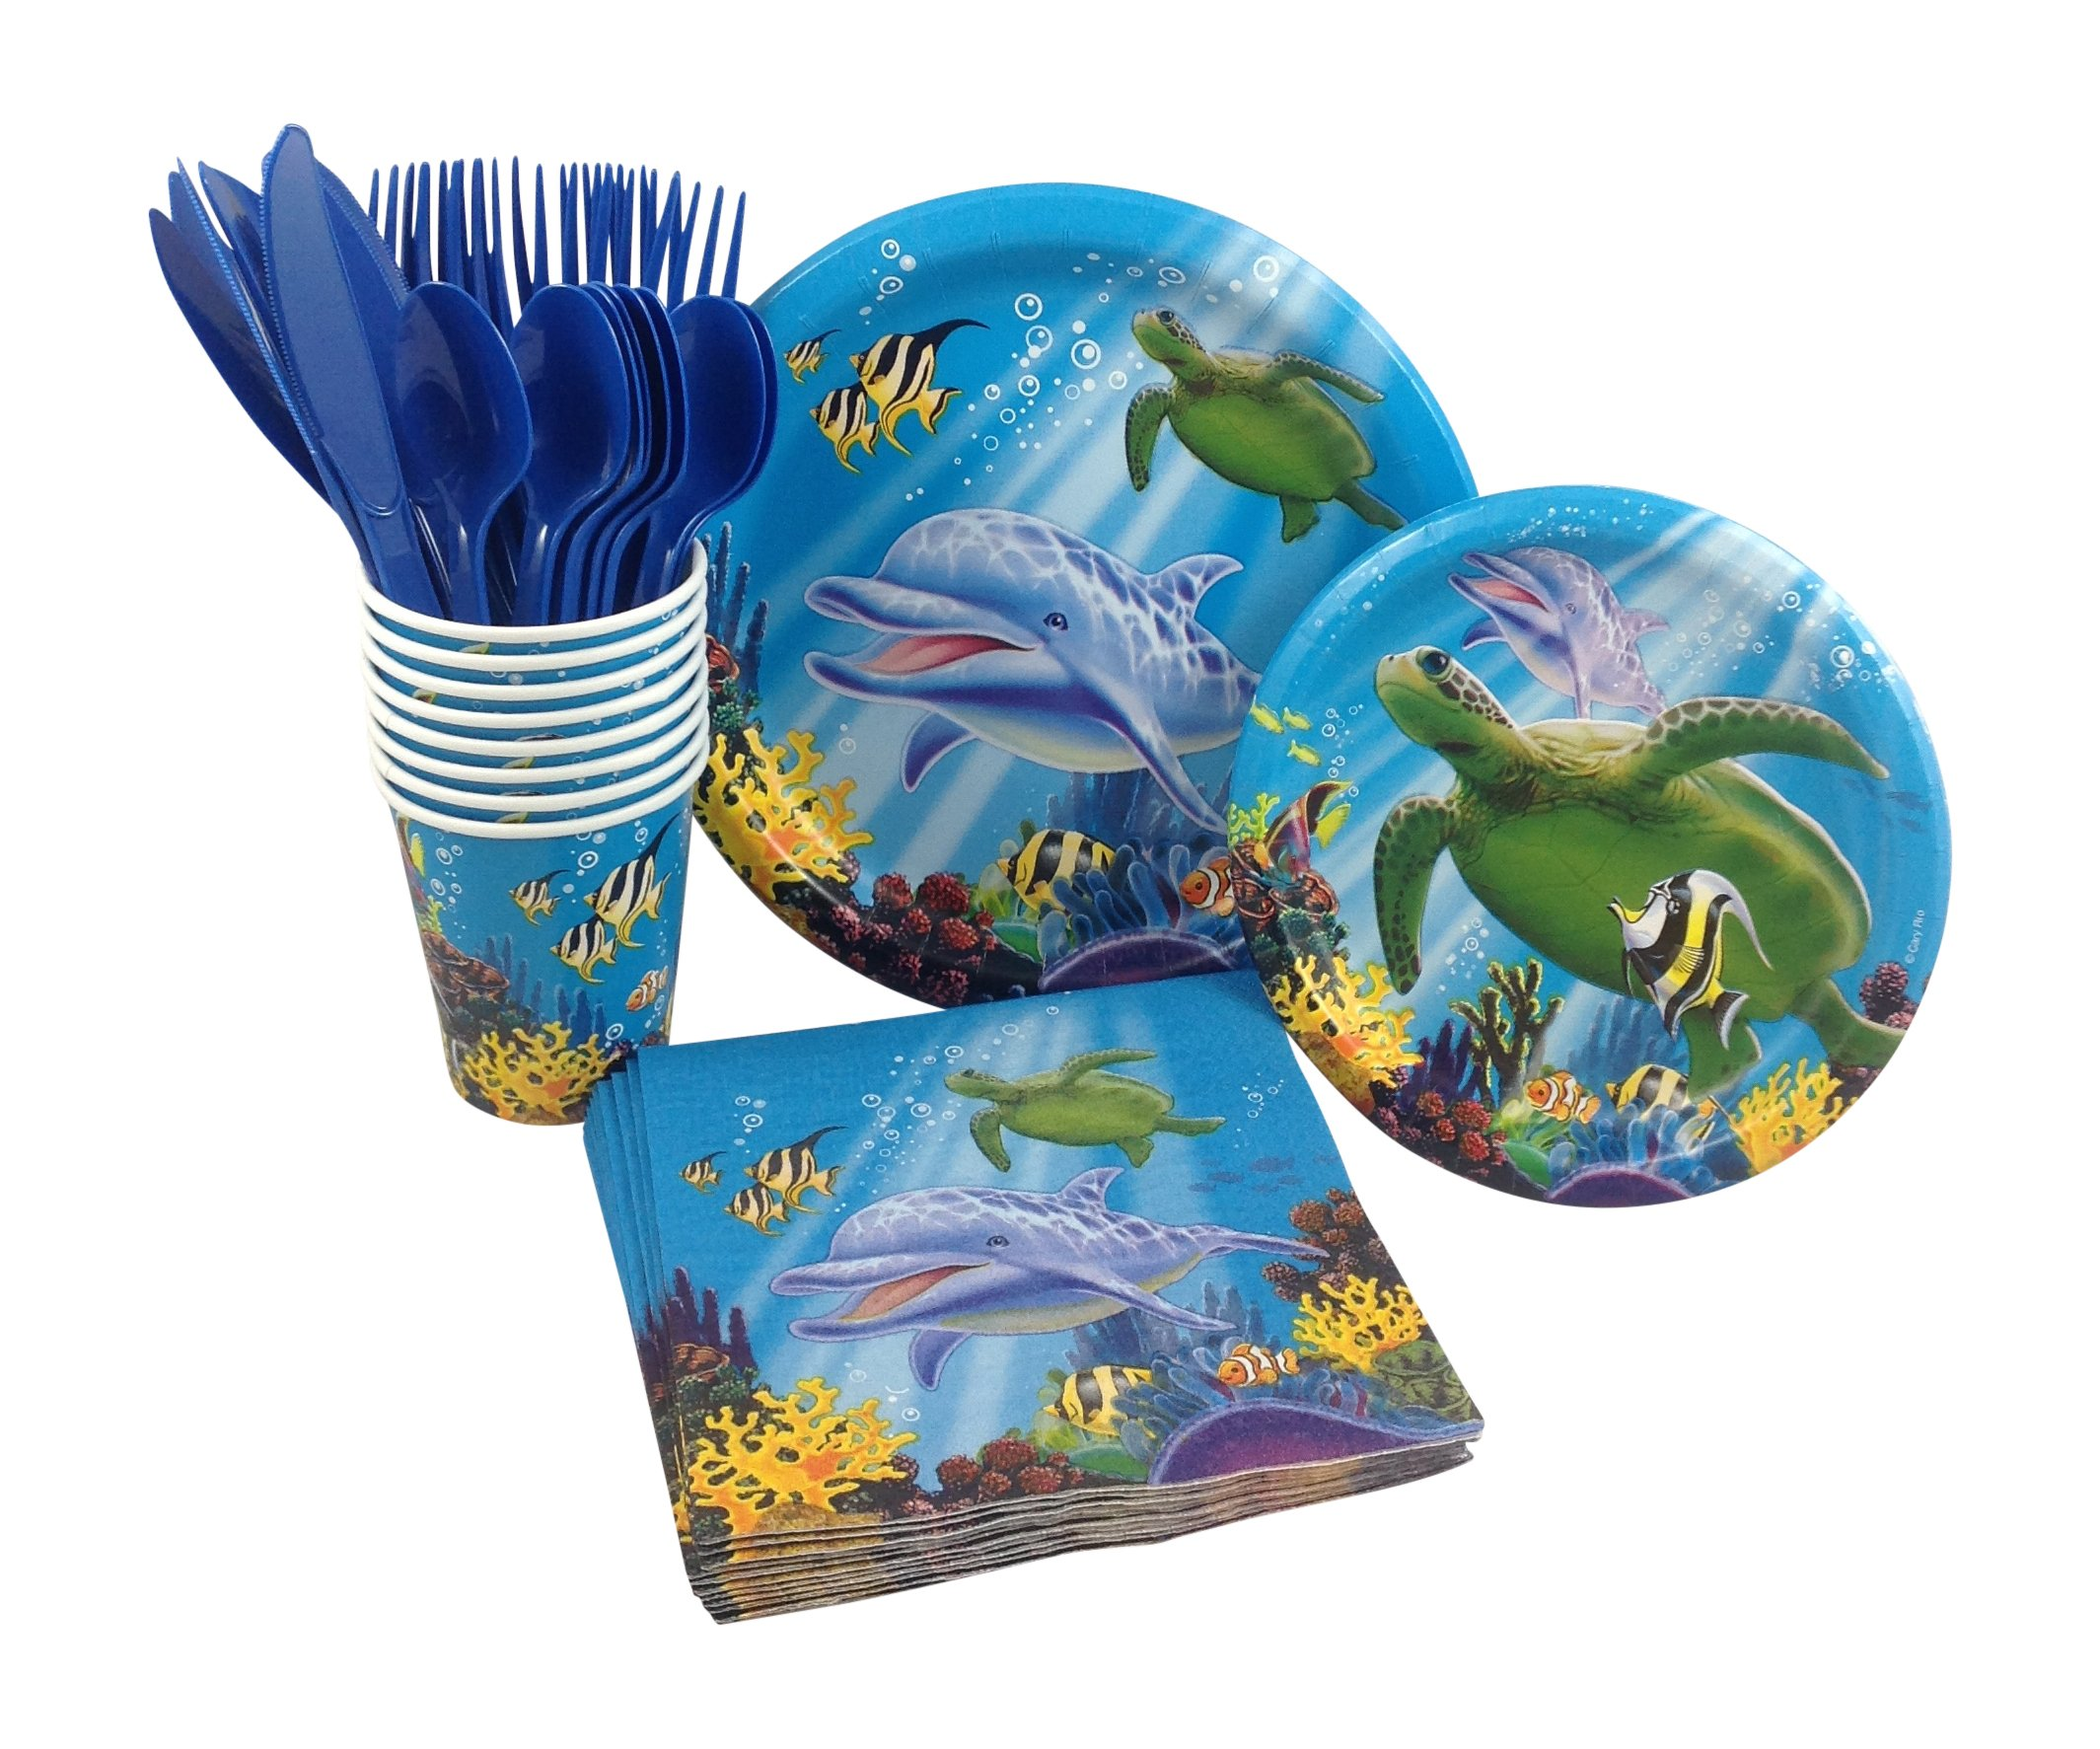 Ocean Animals Birthday Party Supply Pack! Bundle Includes Paper Plates, Napkins, Cups & Silverware for 8 Guests